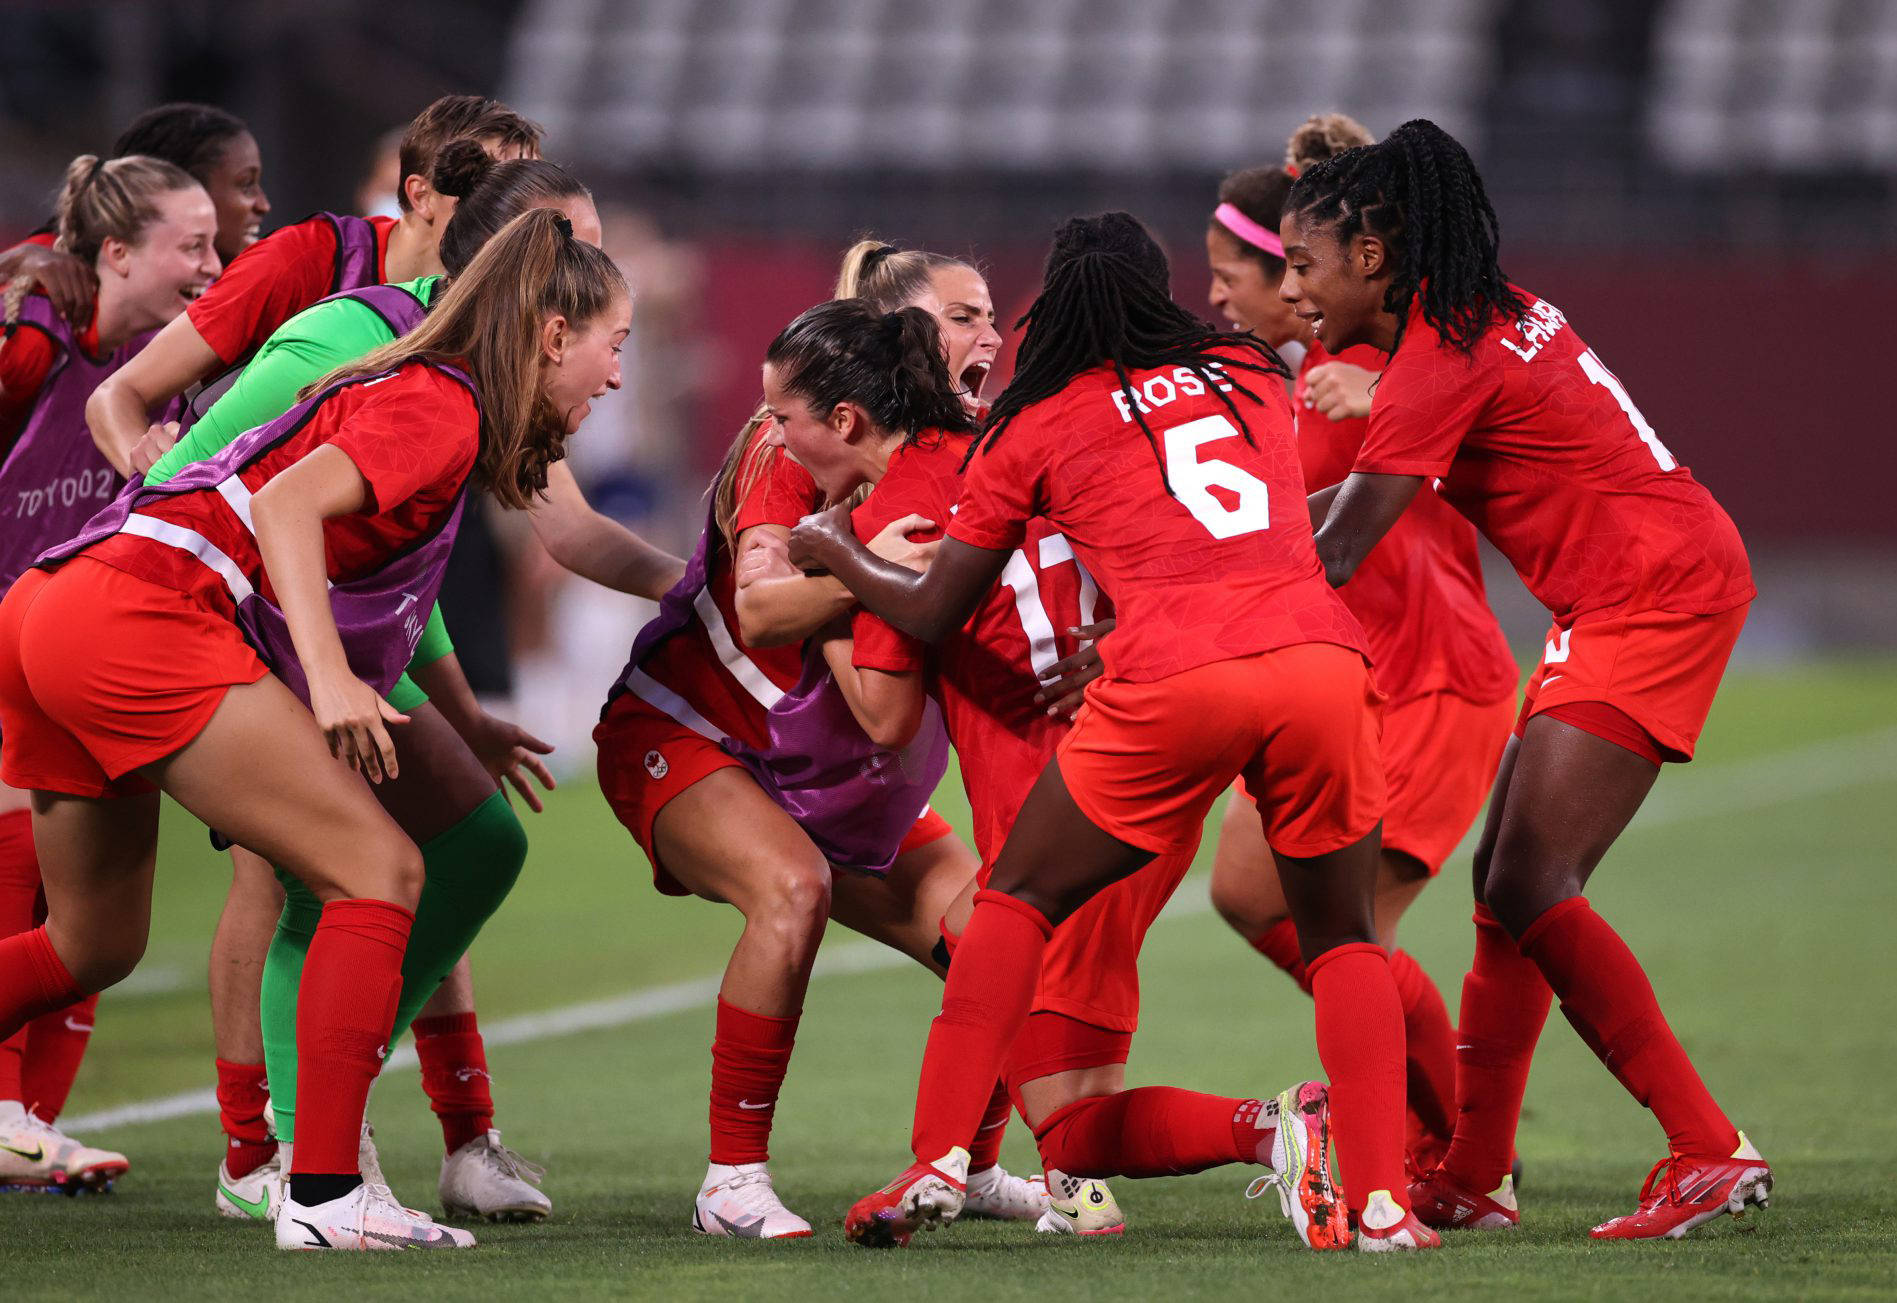 Chilliwack's Jordyn Huitema (left in red jersey/shorts with purple pinnie) joins Canadian national women's soccer squad teammates mobbing Jessie Fleming after her penalty kick goal lifted the team to a 1-0 semi-final win over the United States. (Canada Soccer photo)